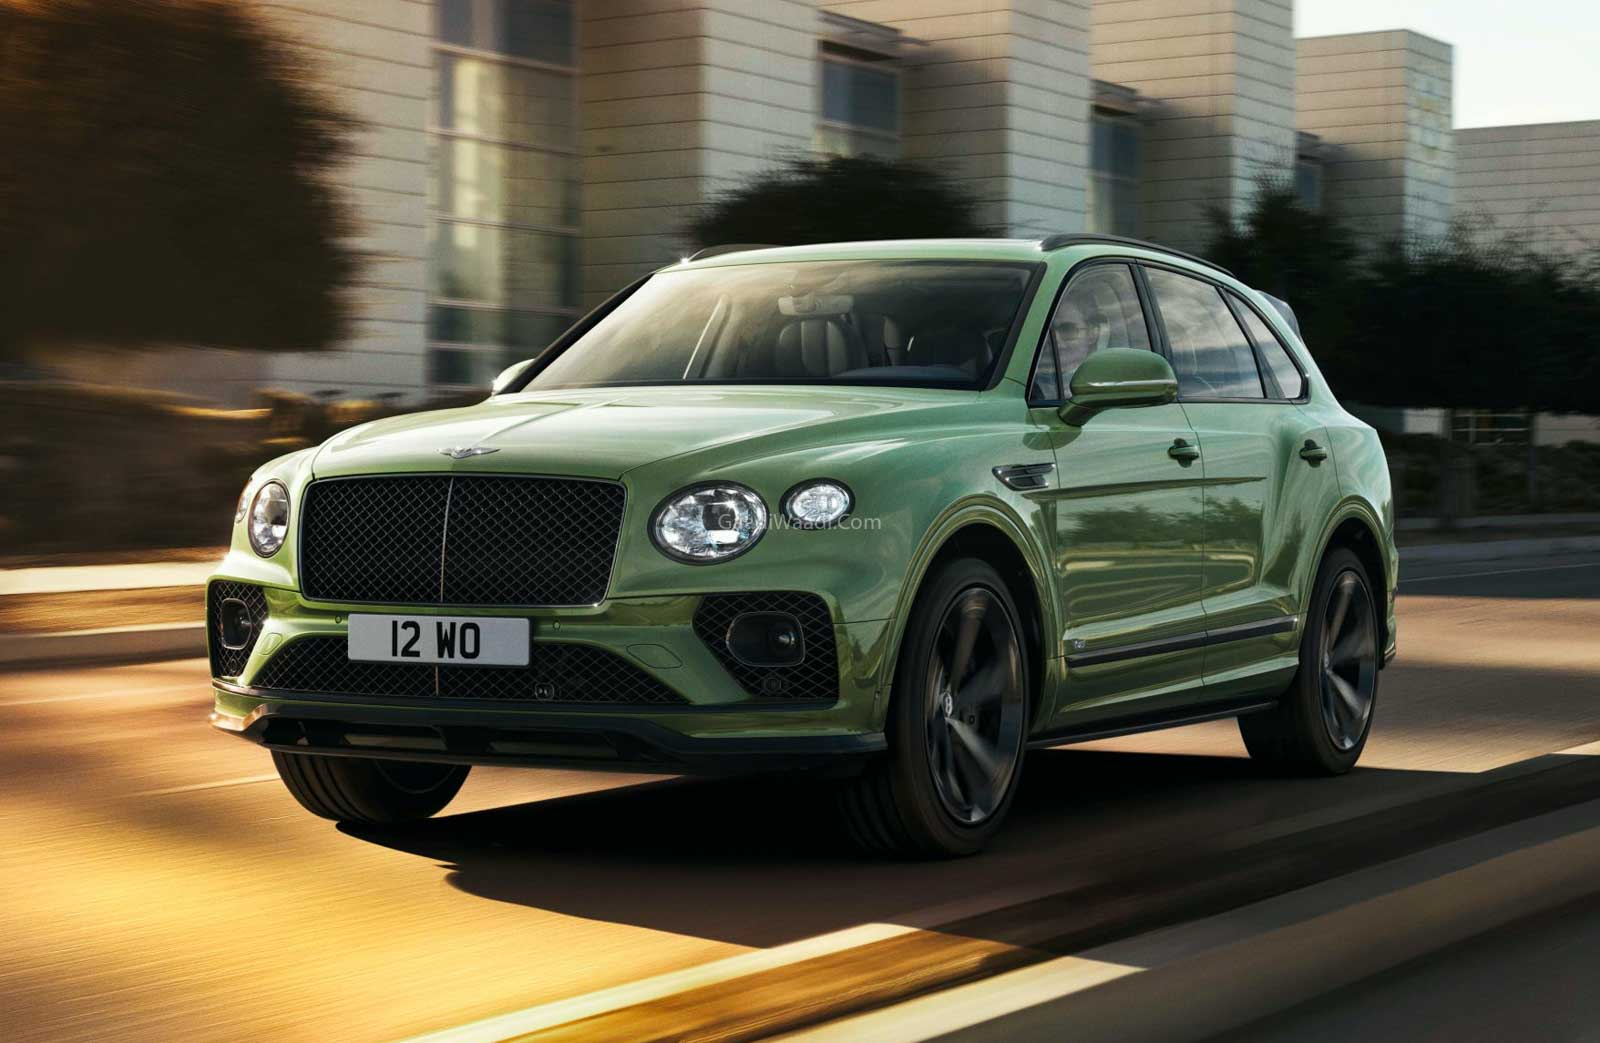 Bentley Bentayga Facelift Unveiled, Features Styling And Tech Updates